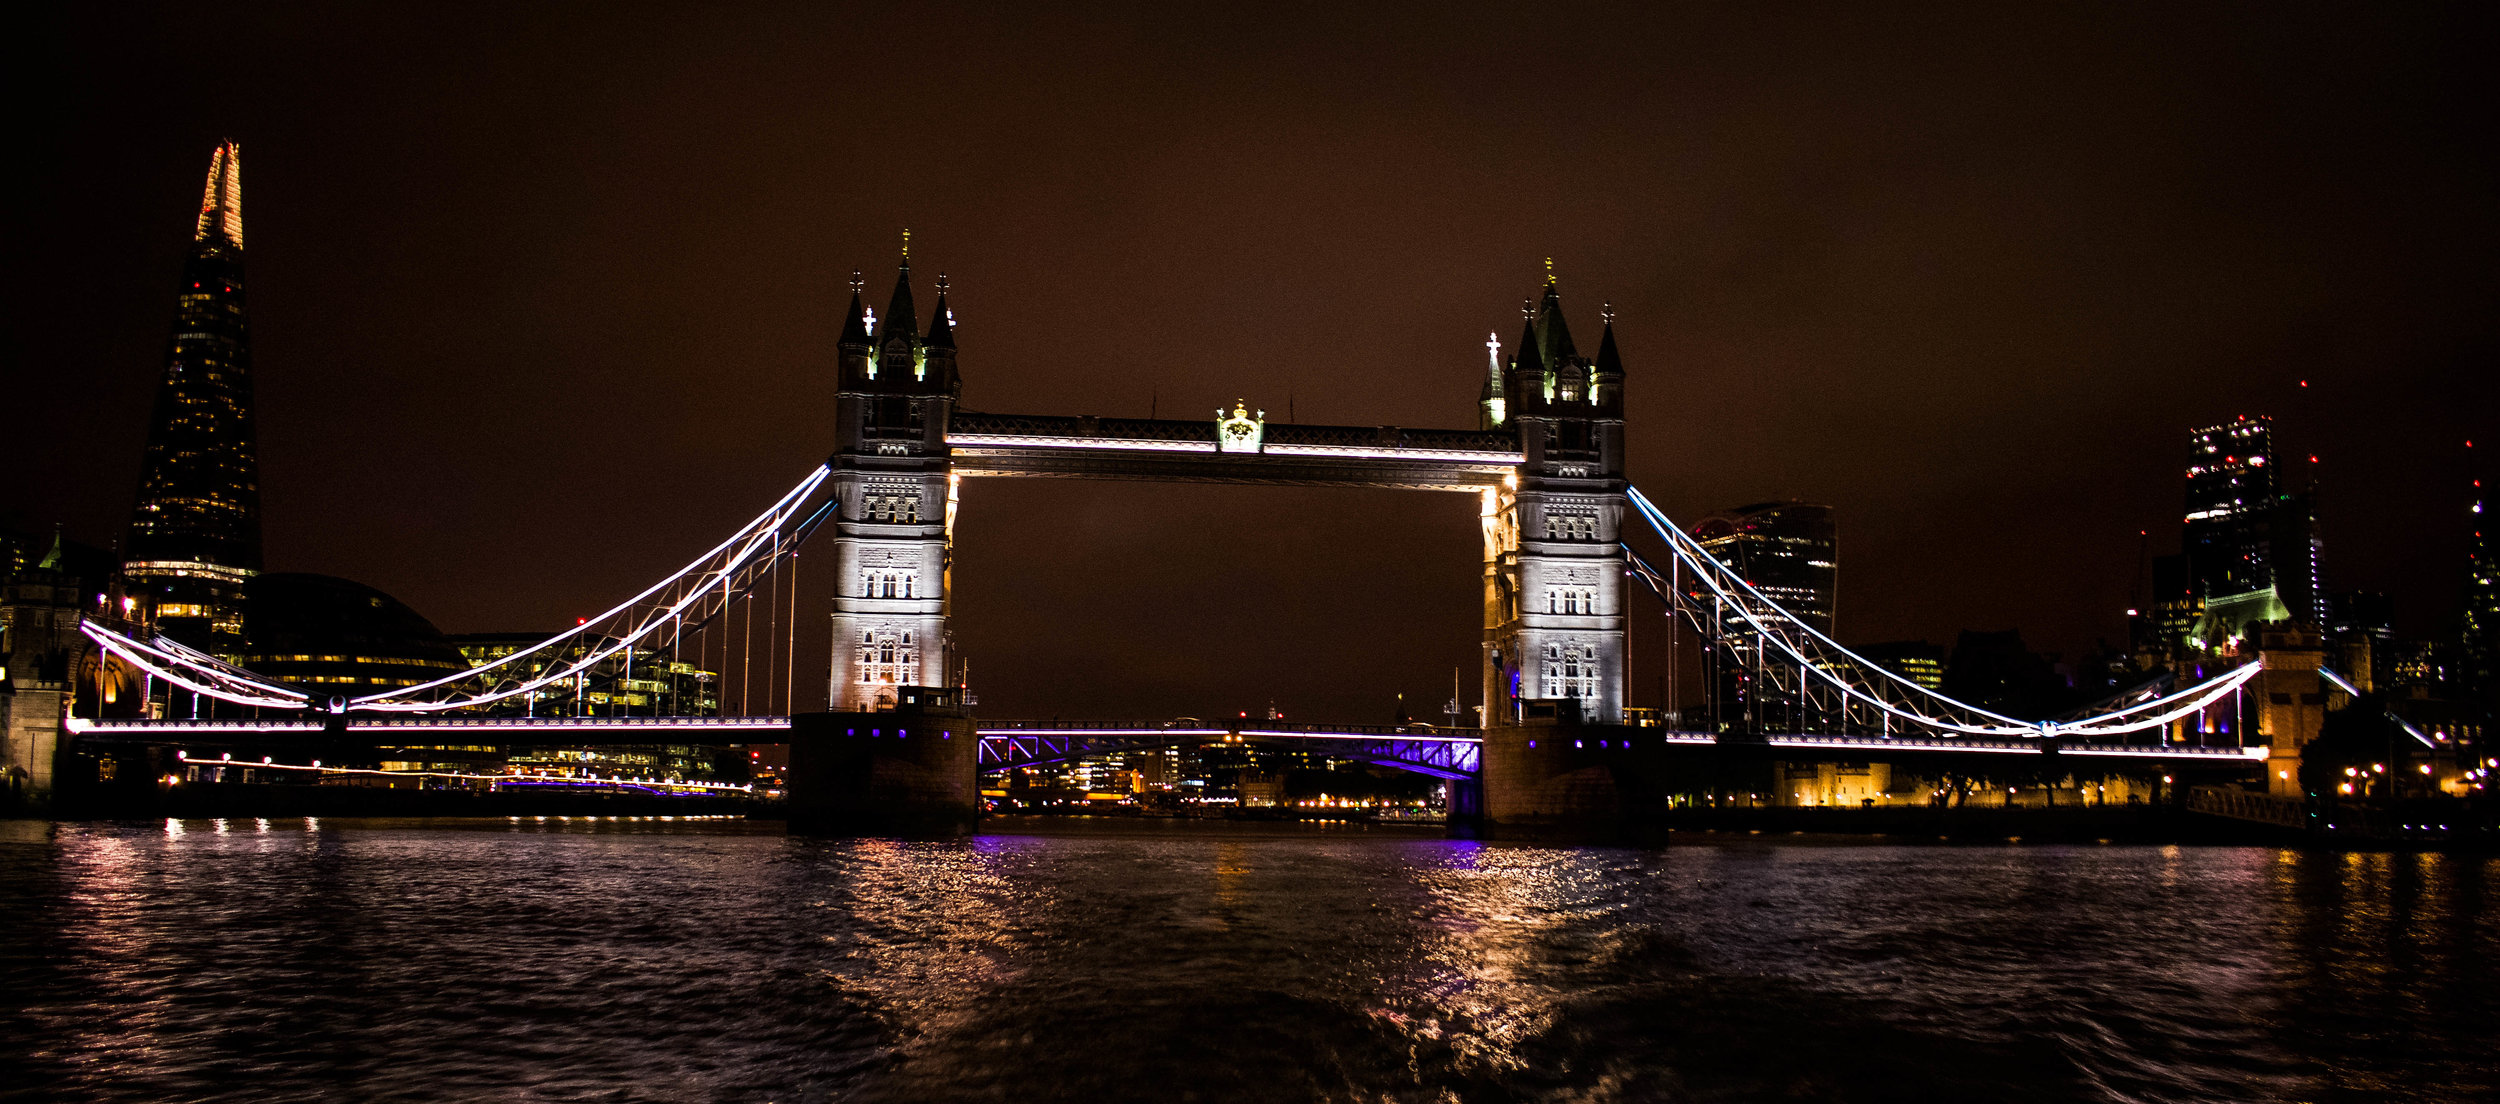 2. Tower Bridge - *Take the Thames Clipper for the best views!